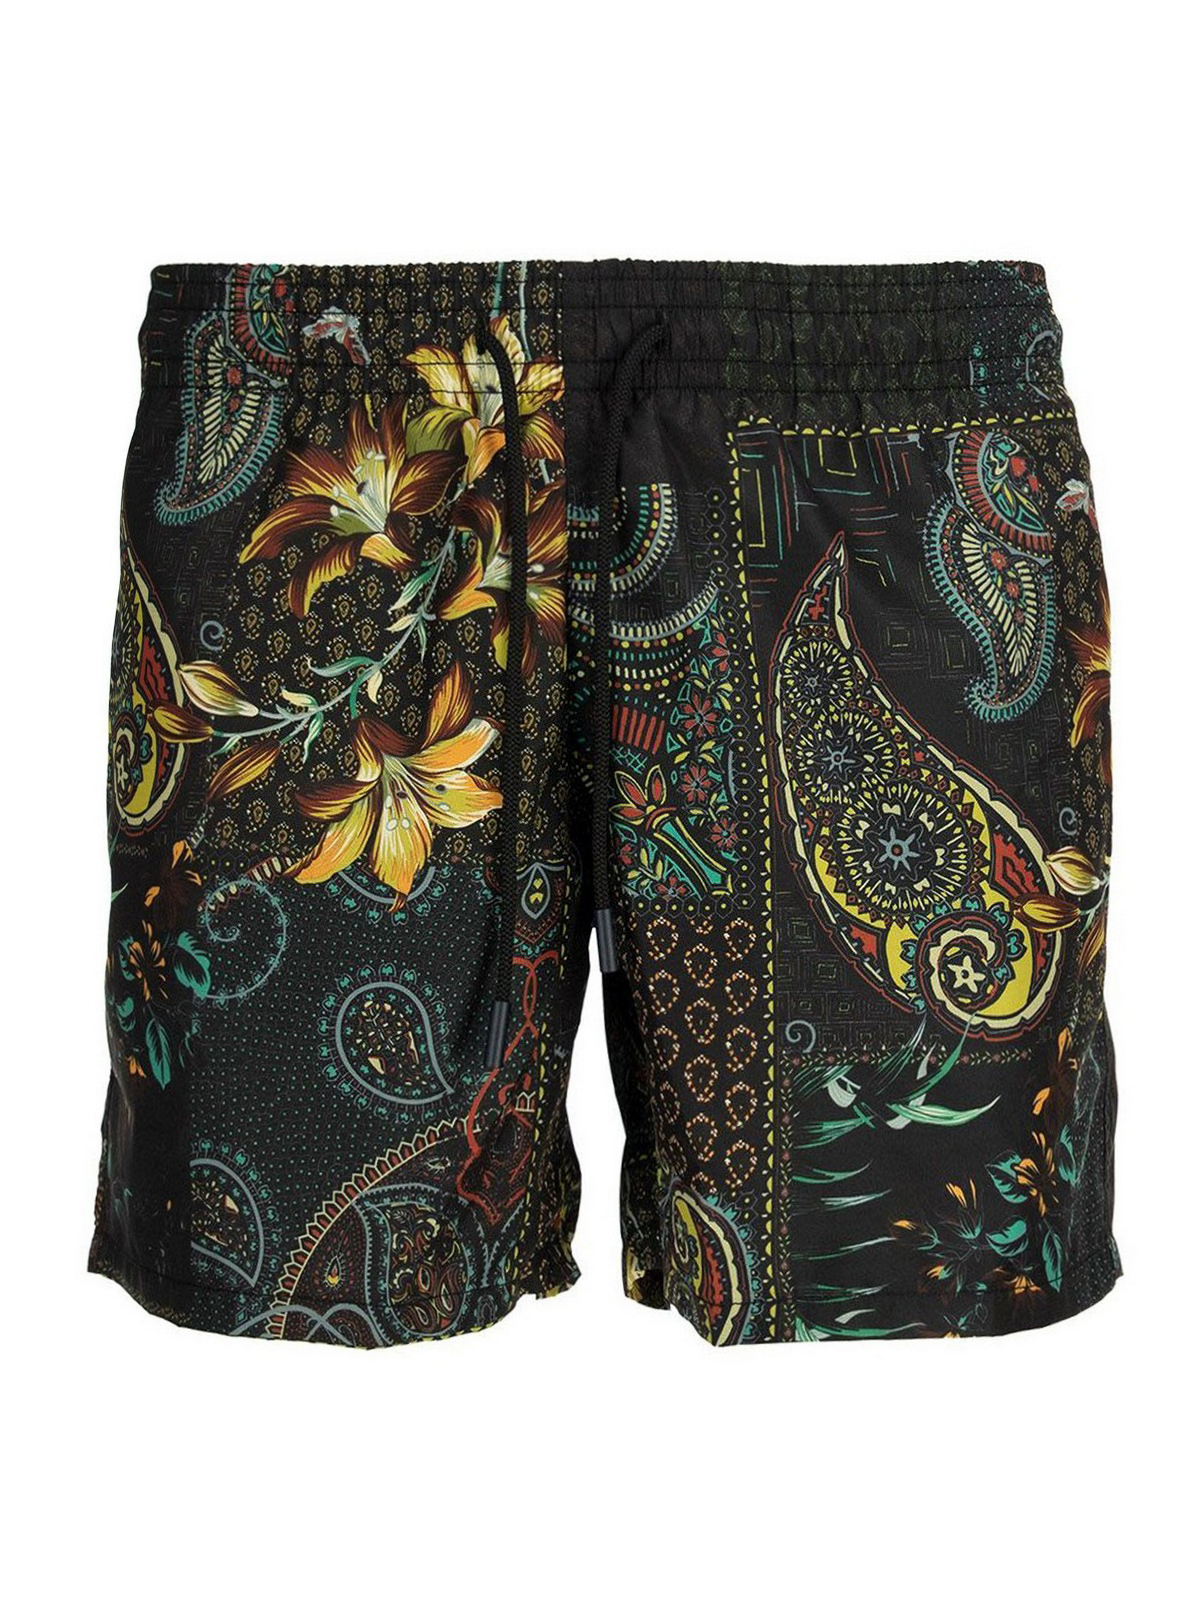 Etro PAISLEY FLORAL PRINTED SWIMMING SHORTS